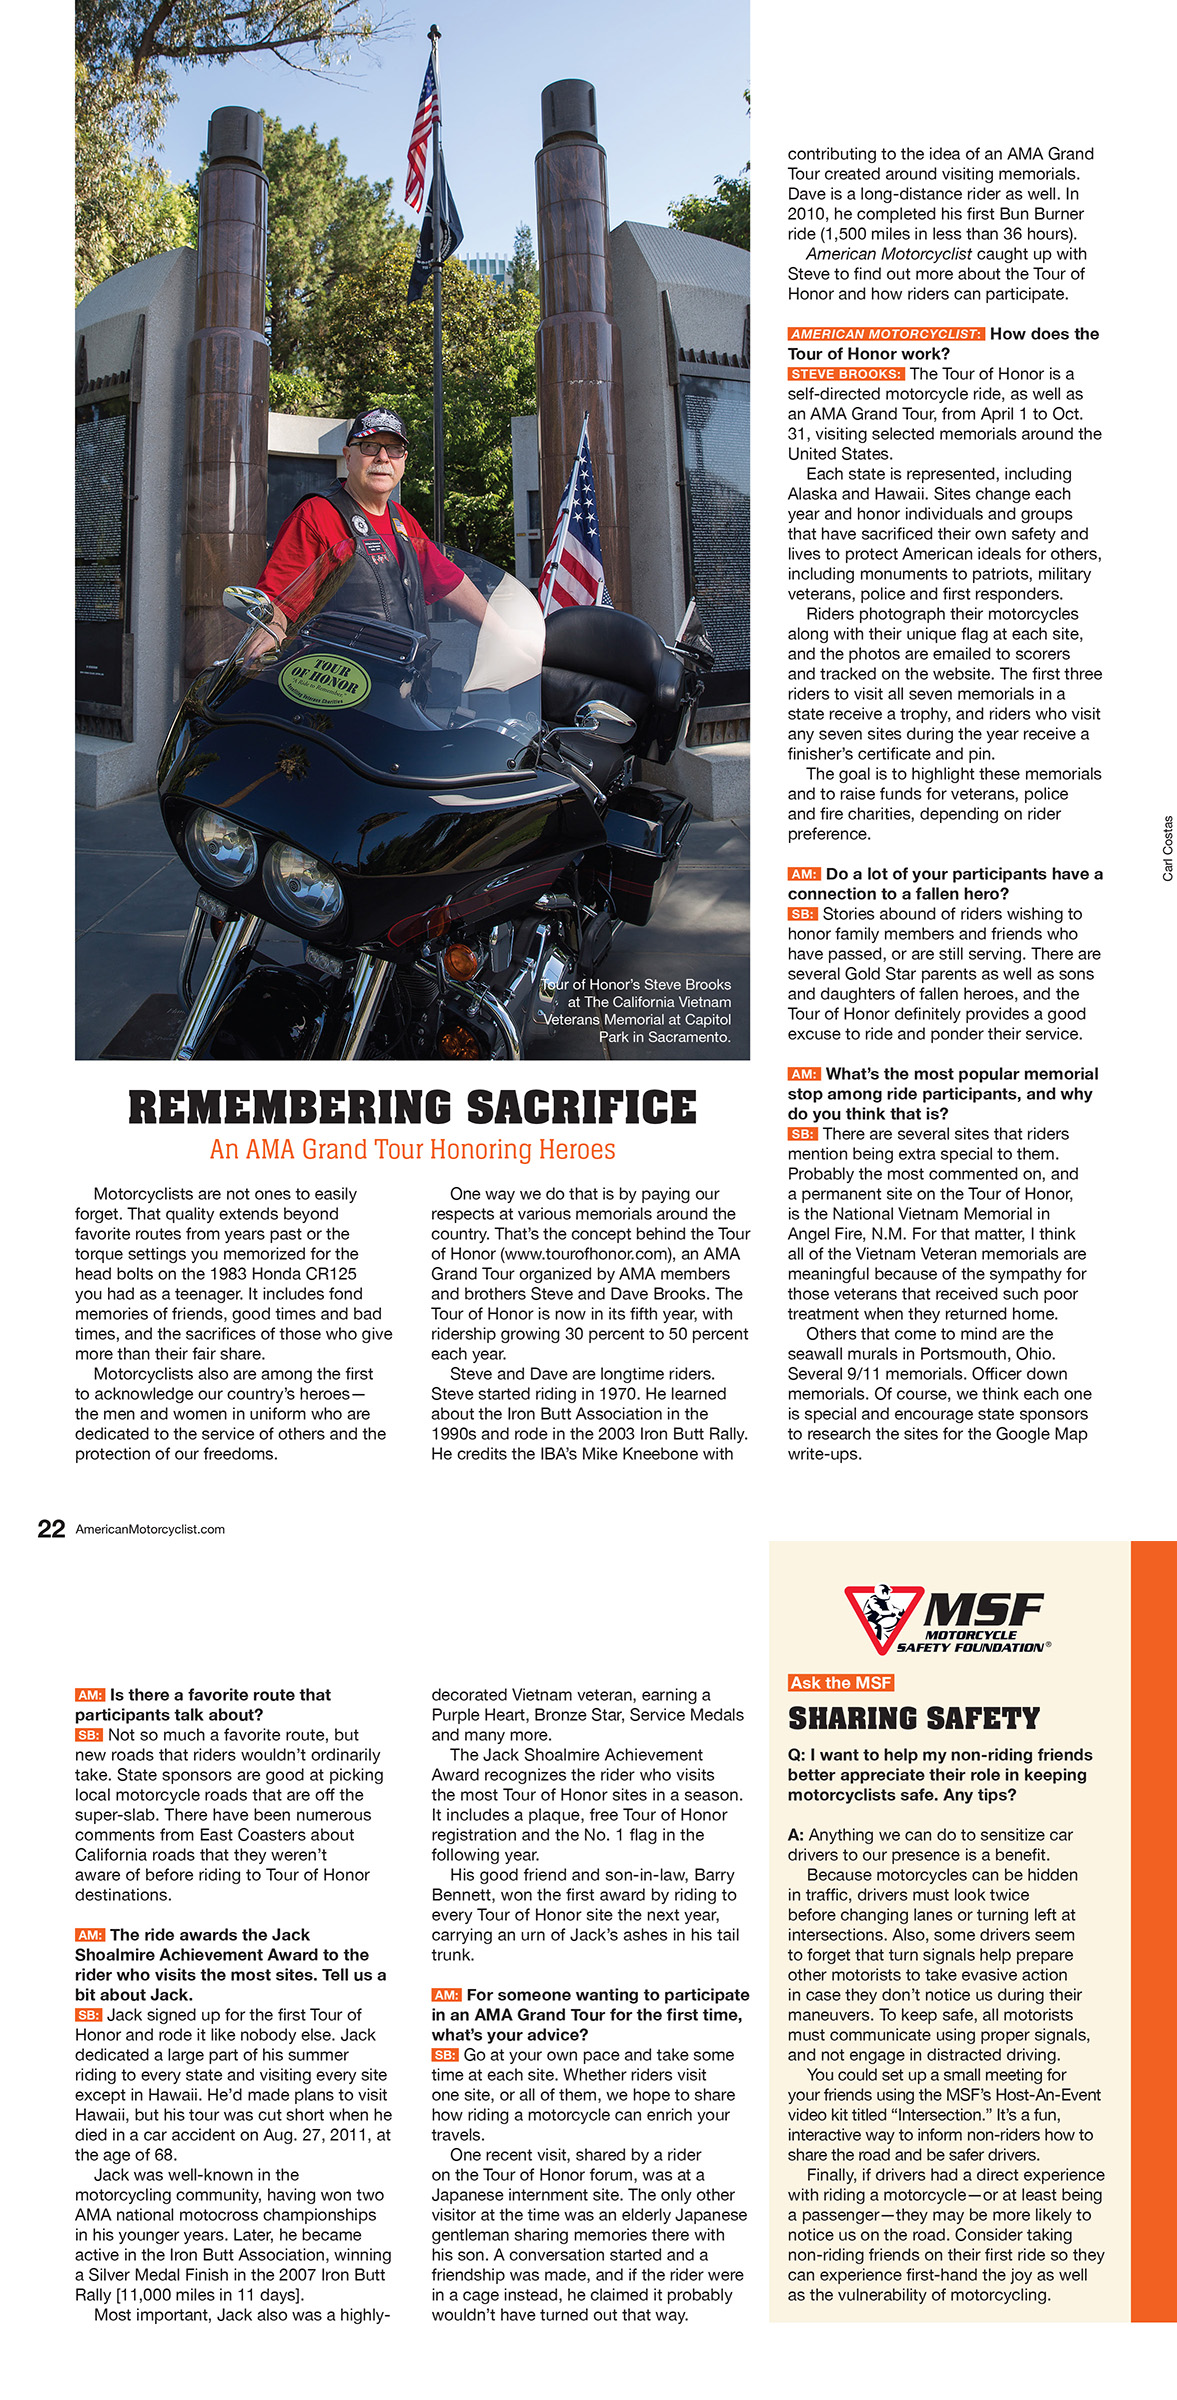 American Motorcyclist Magazine article